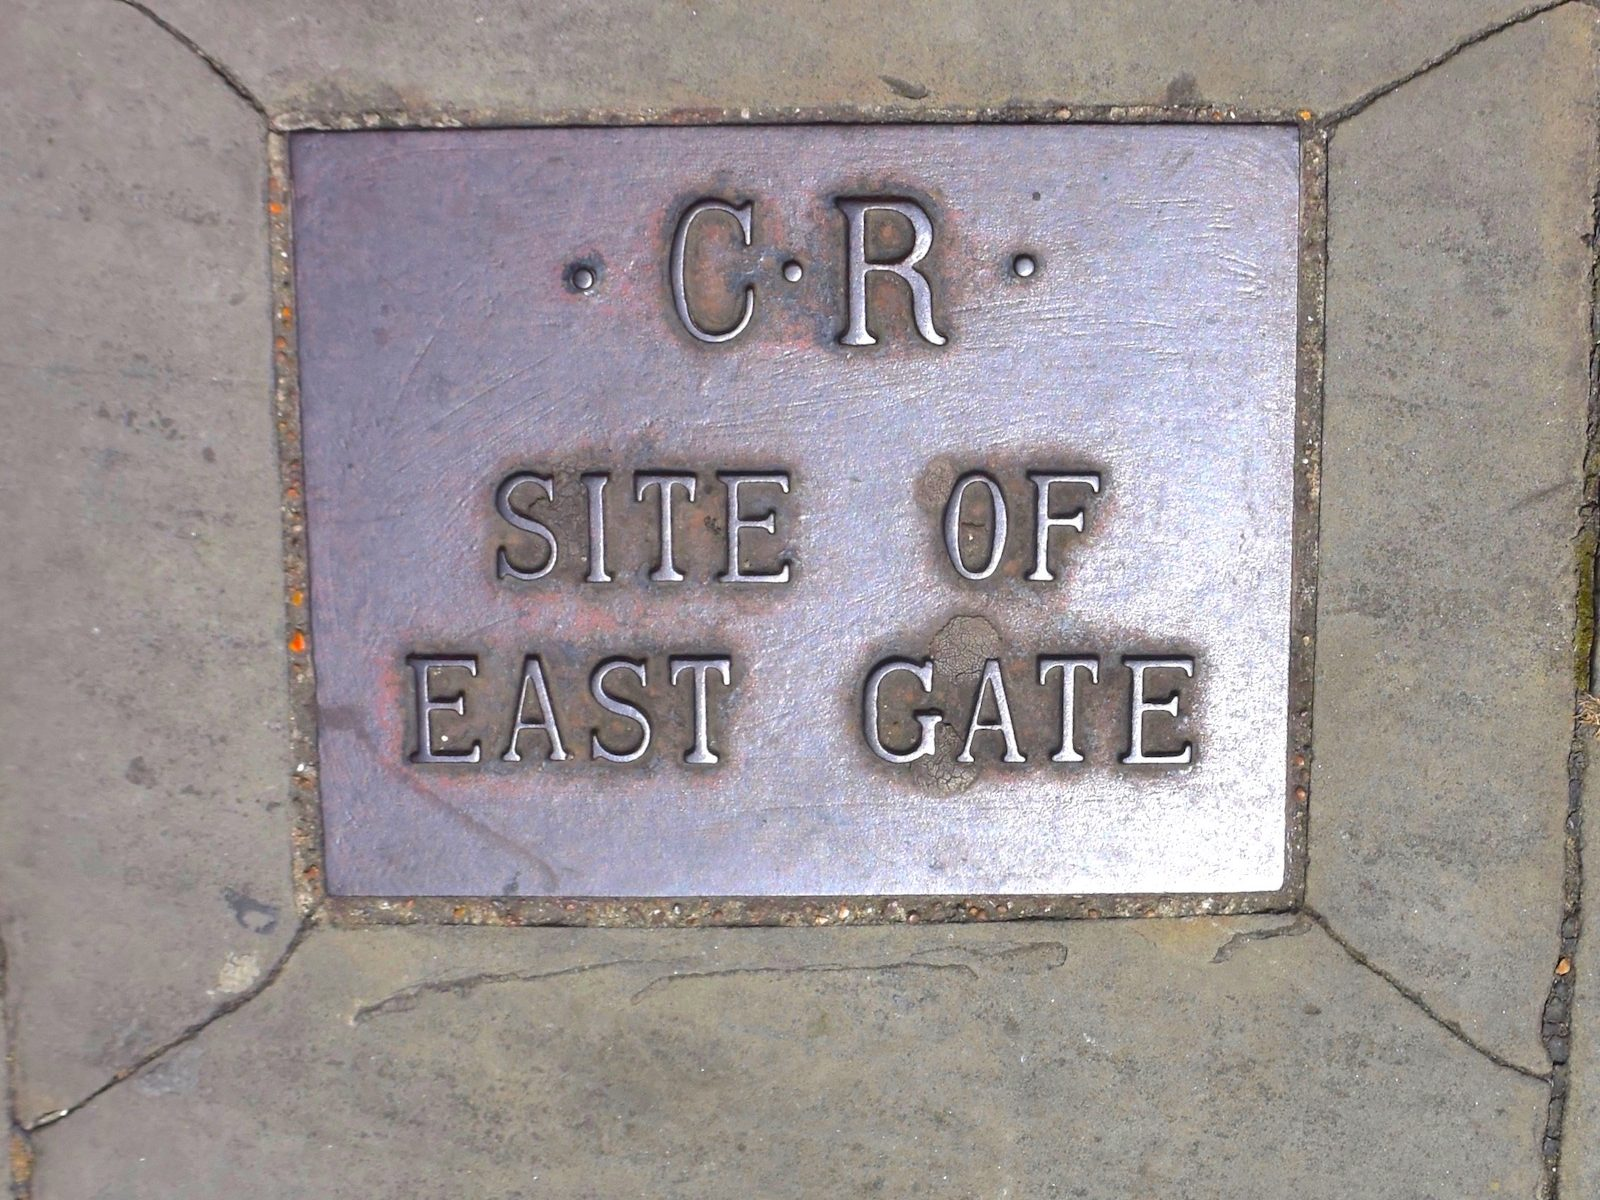 Rochester, Kent. Plaque showing where the East Gate in the Roman walls once was.